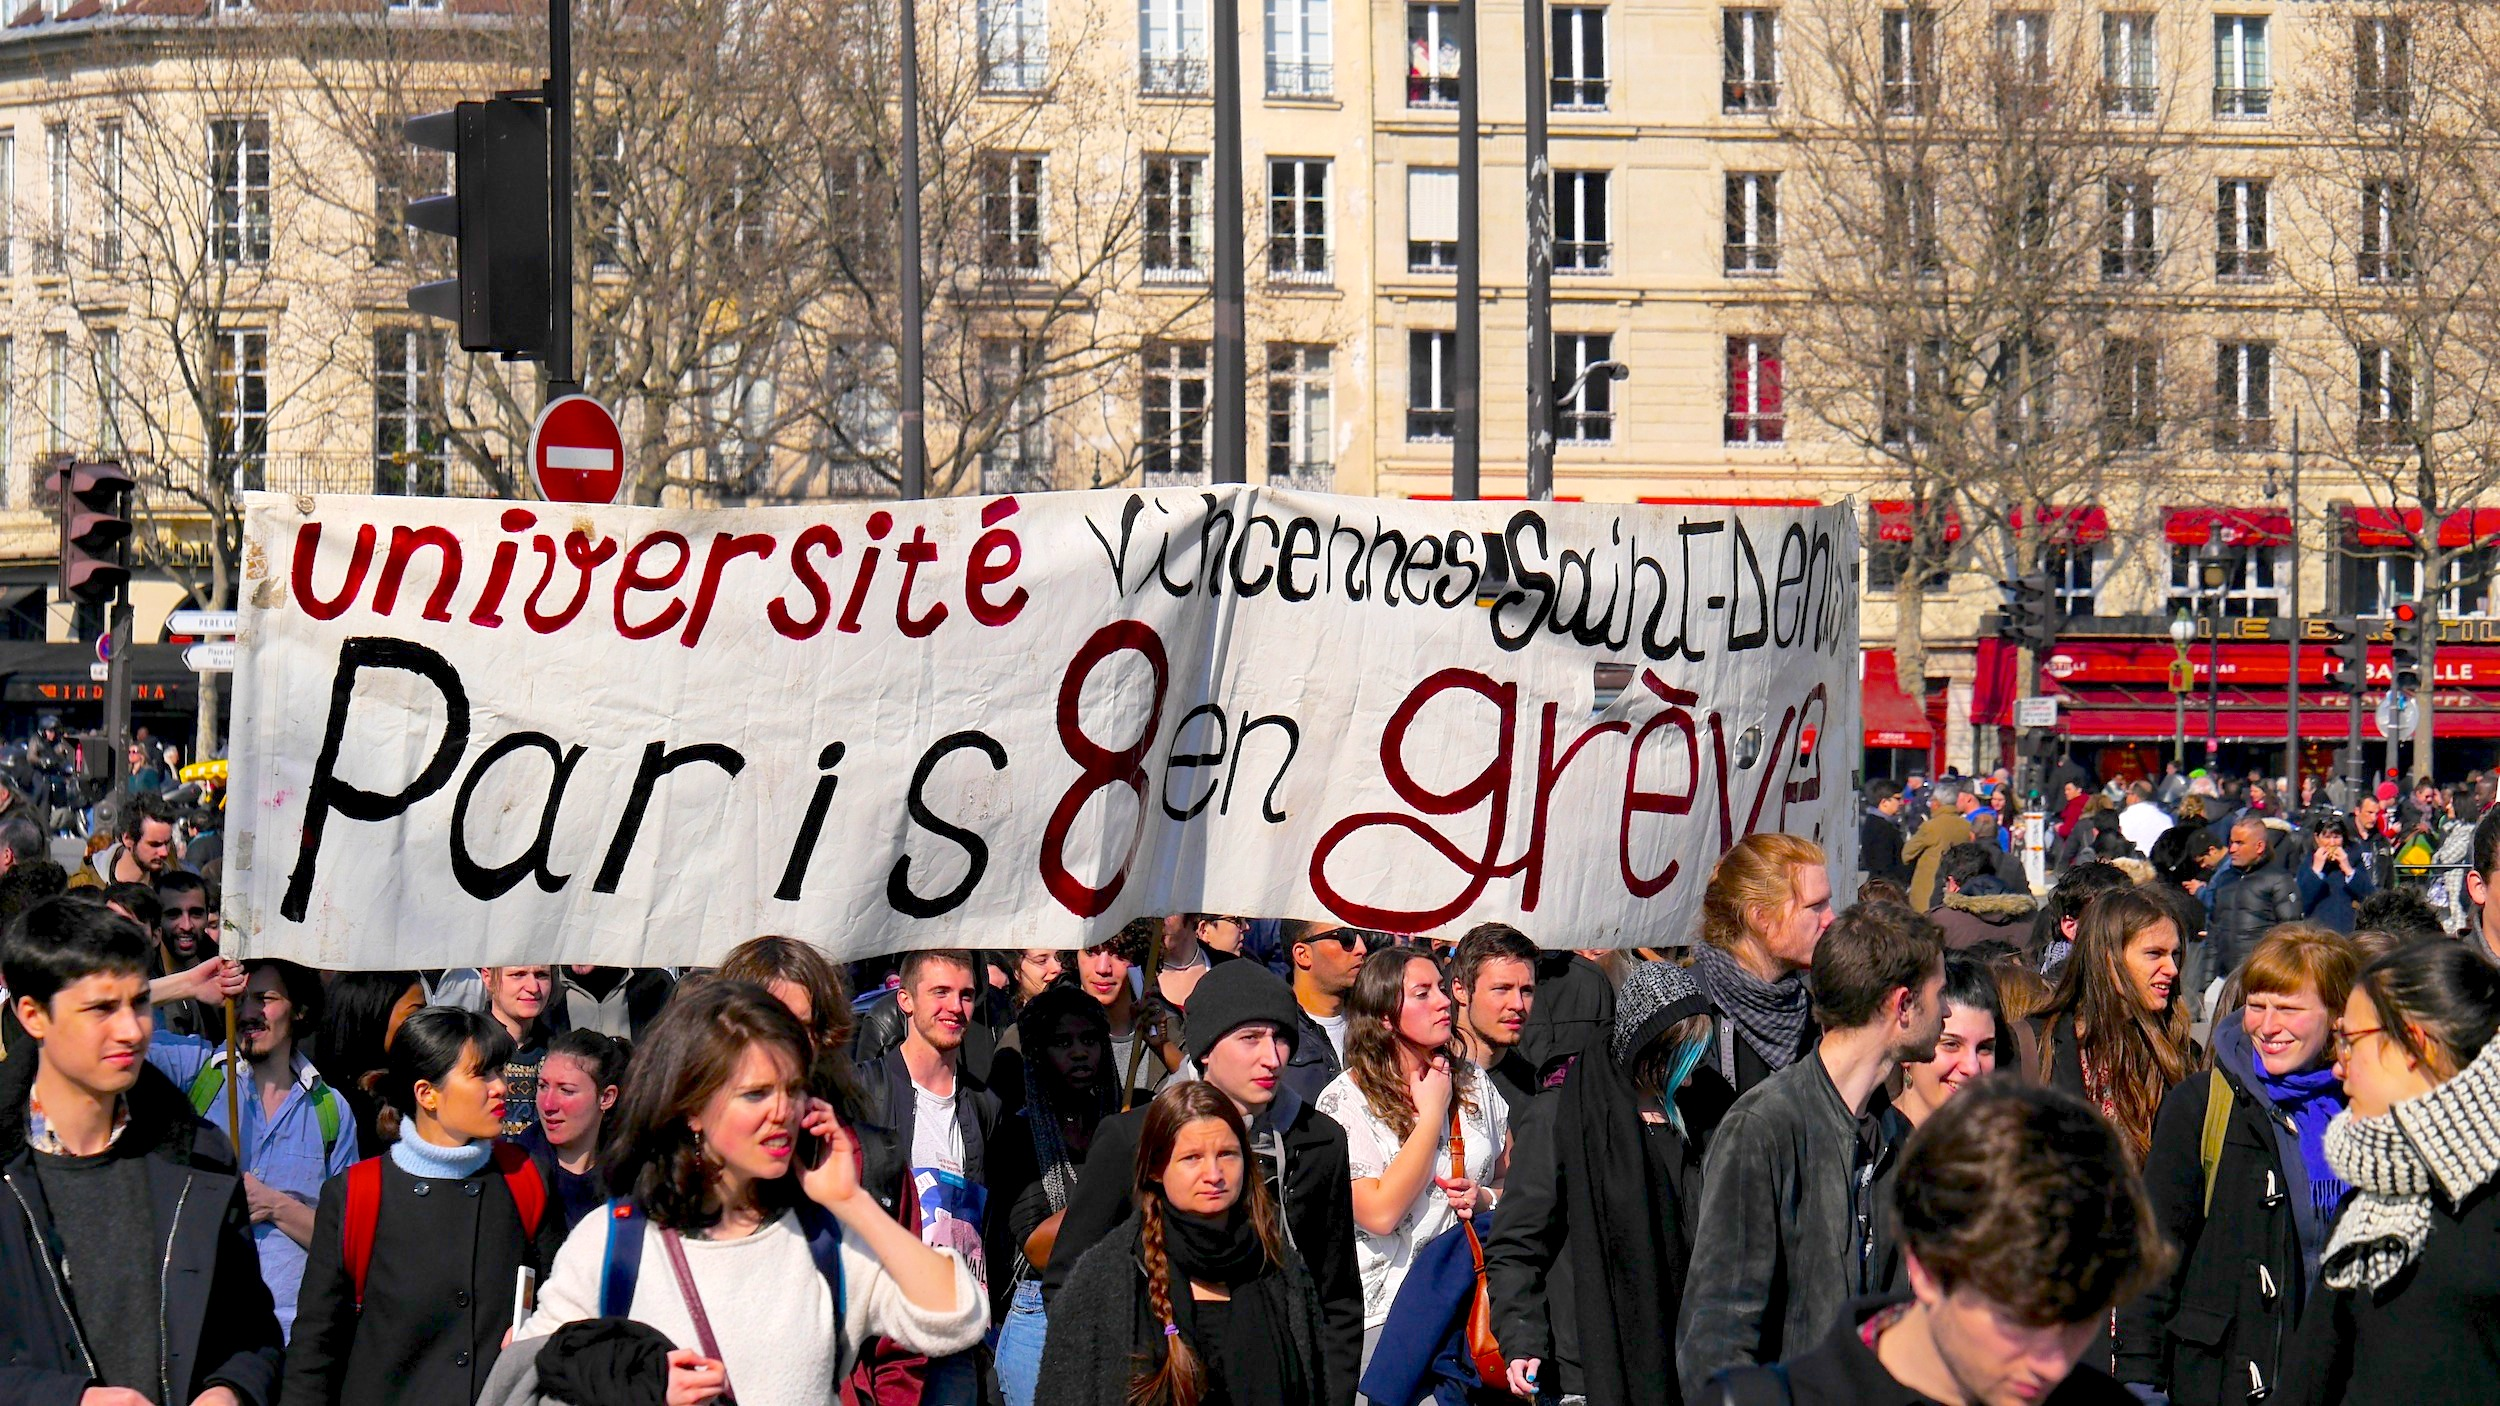 «Université Vincennes-Saint-Denis Paris 8 en grève»